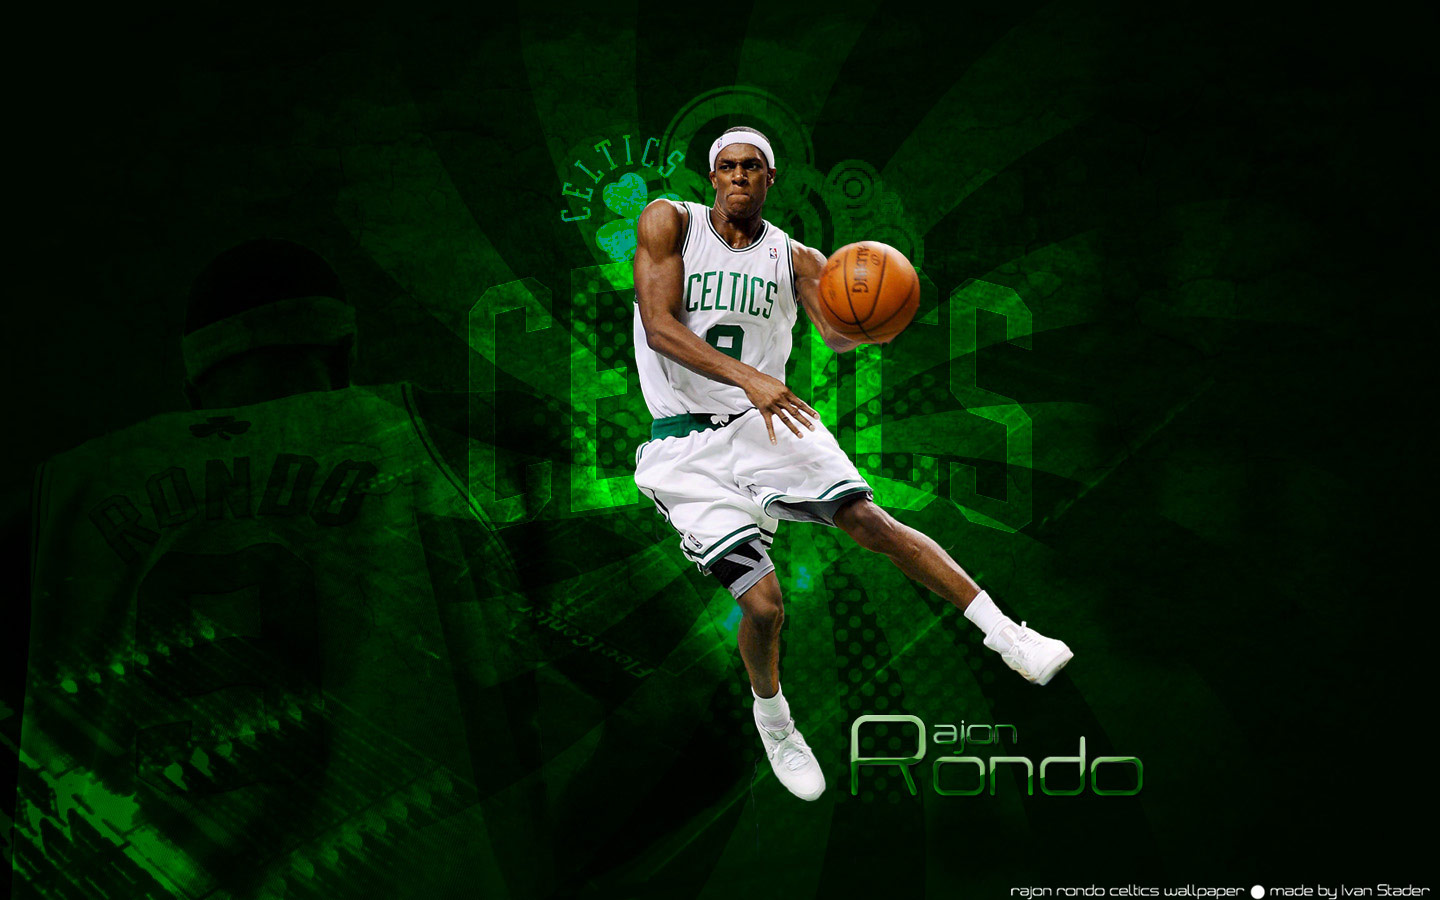 Rajon Rondo 2010 Widescreen Photo